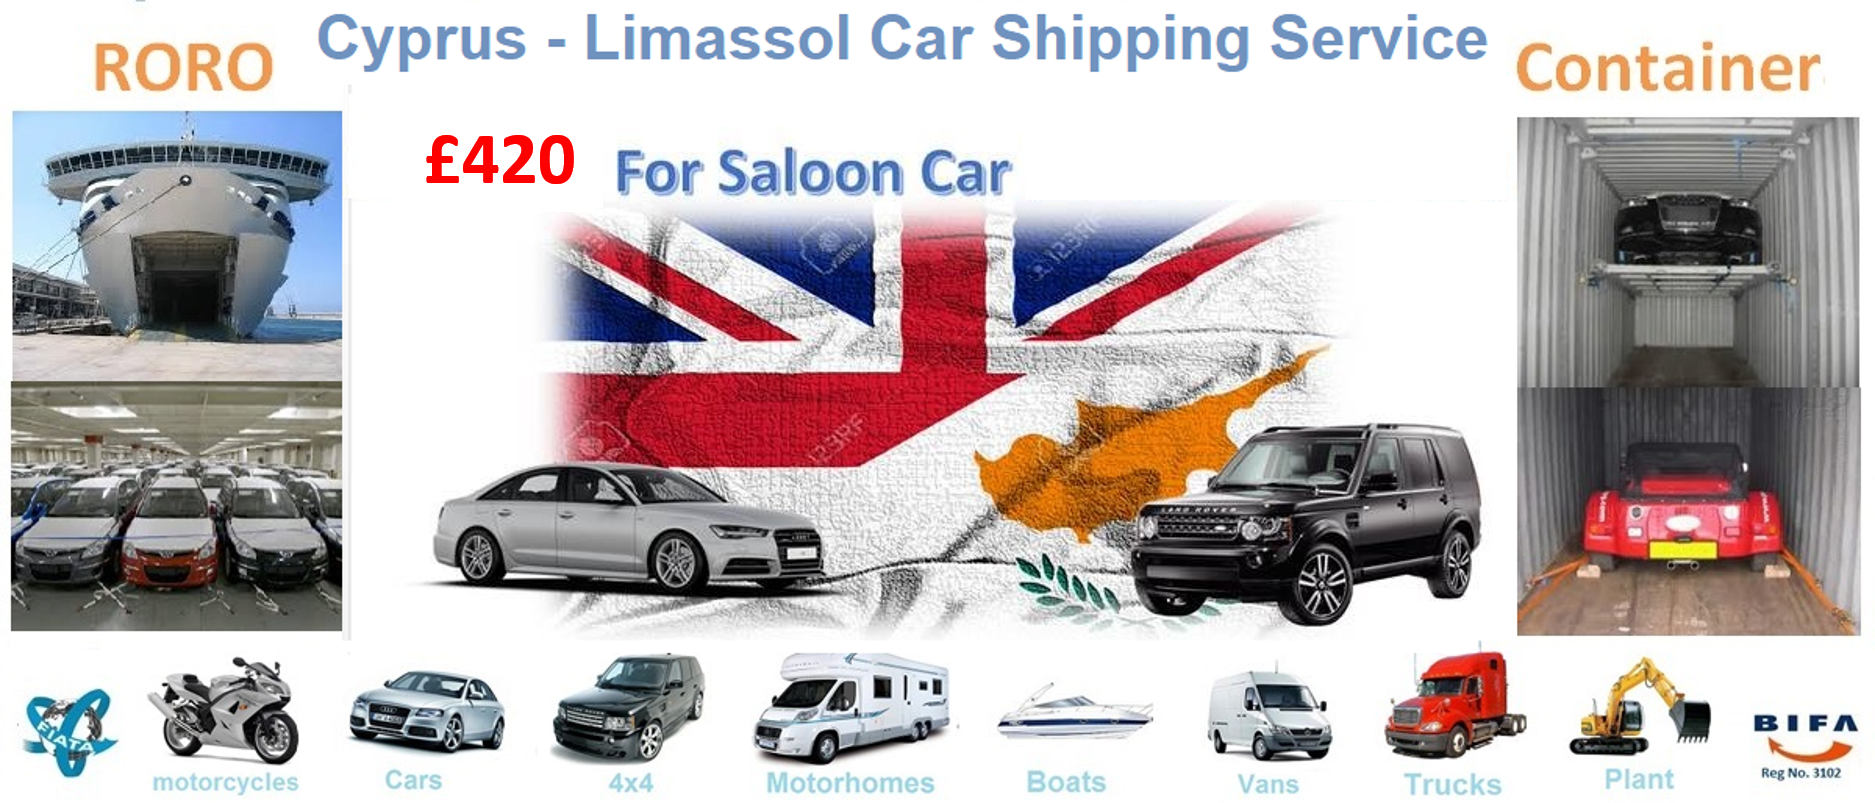 Car Shipping to Cyprus - Car Shipping to Limassol, Roll-on/roll-off